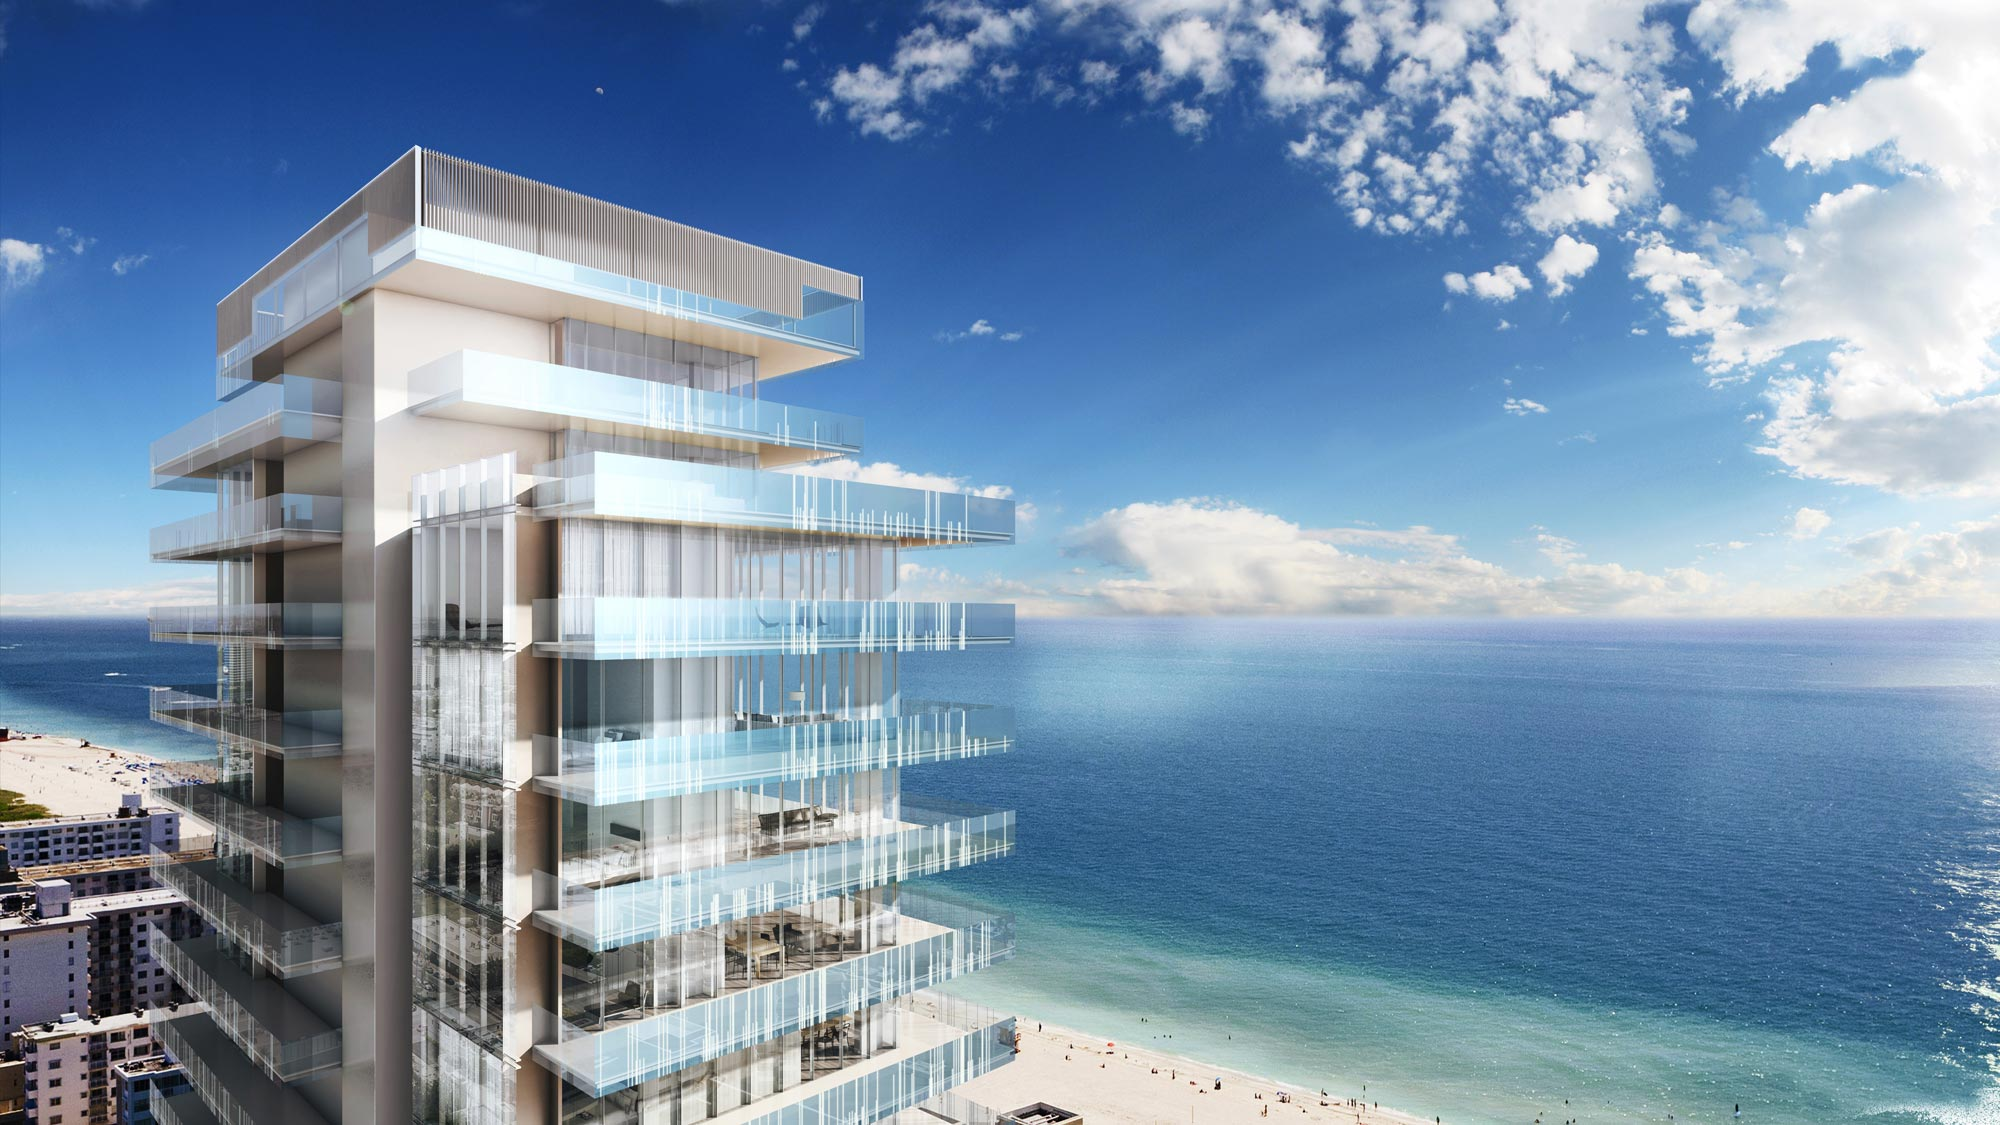 Condo Rentals In Miami Fl On The Beach